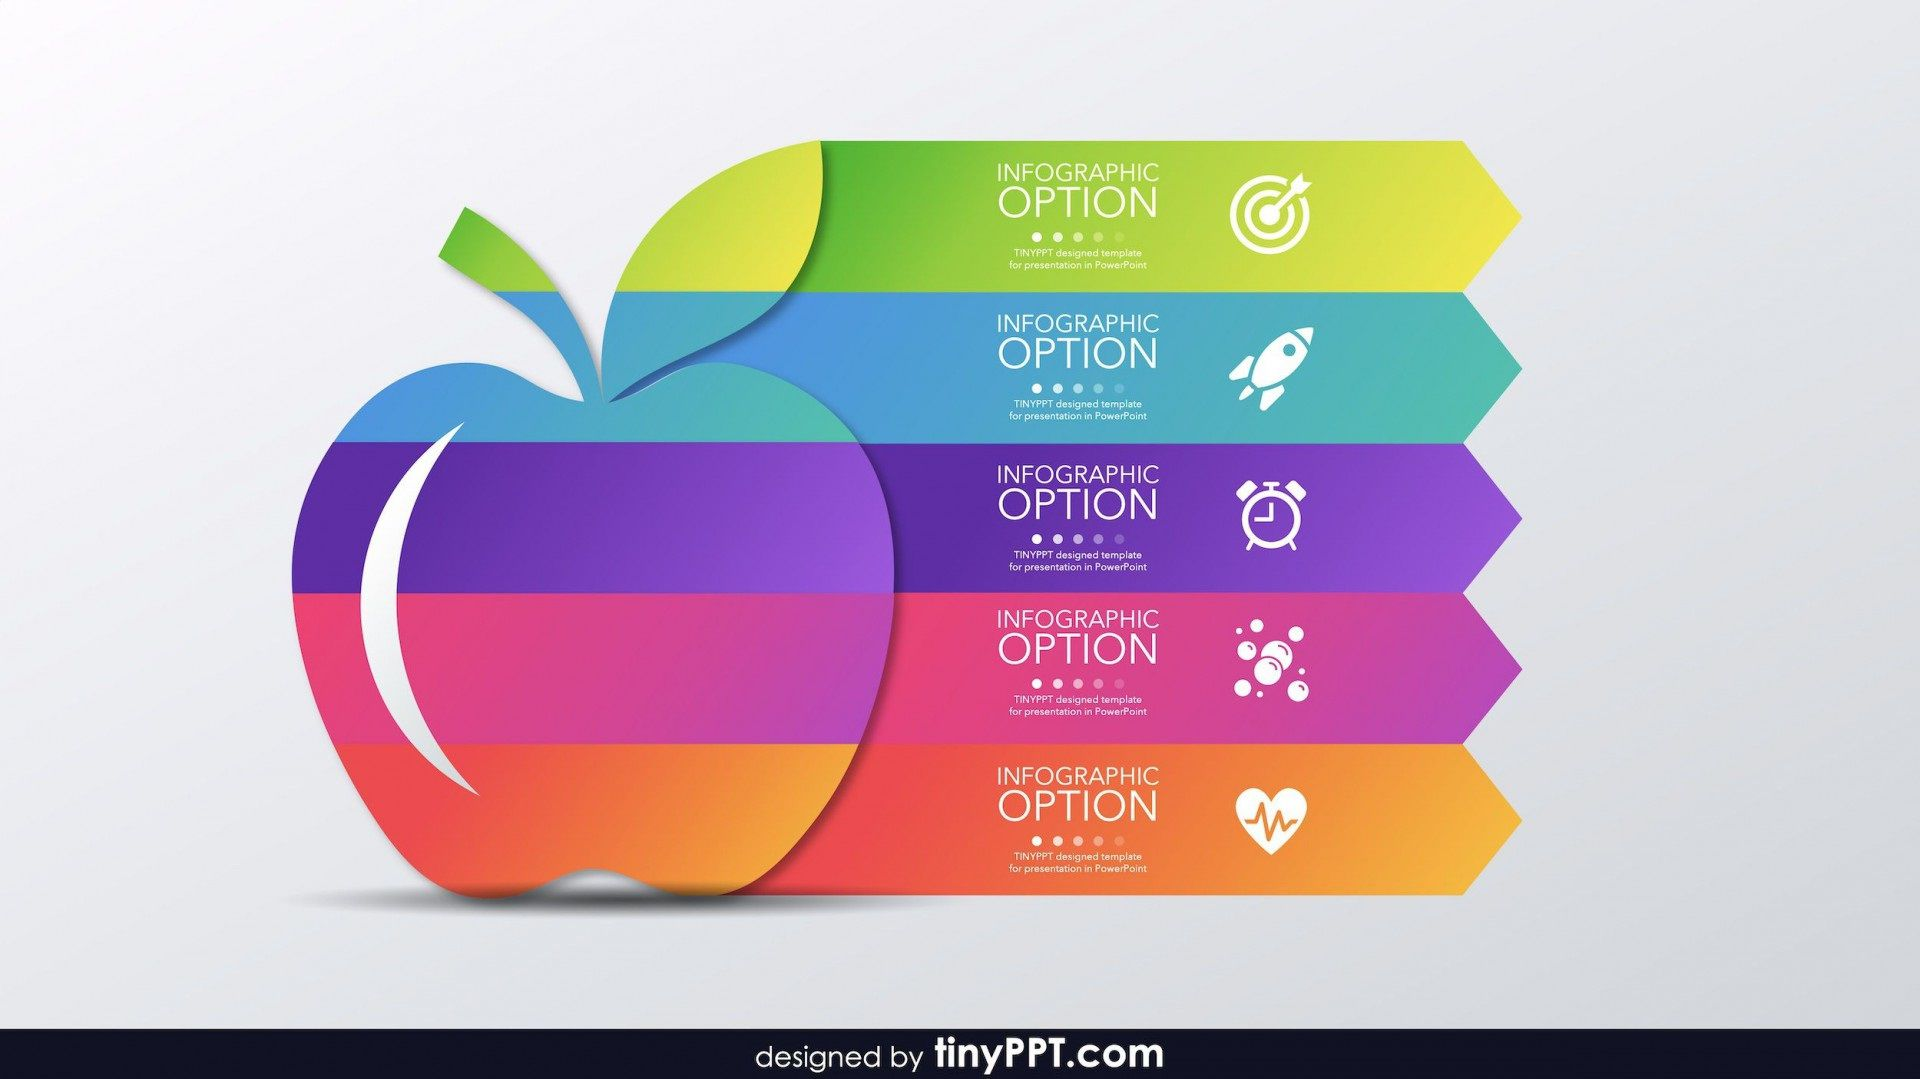 005 Wondrou 3d Animated Powerpoint Template Free Download 2010 Concept Full